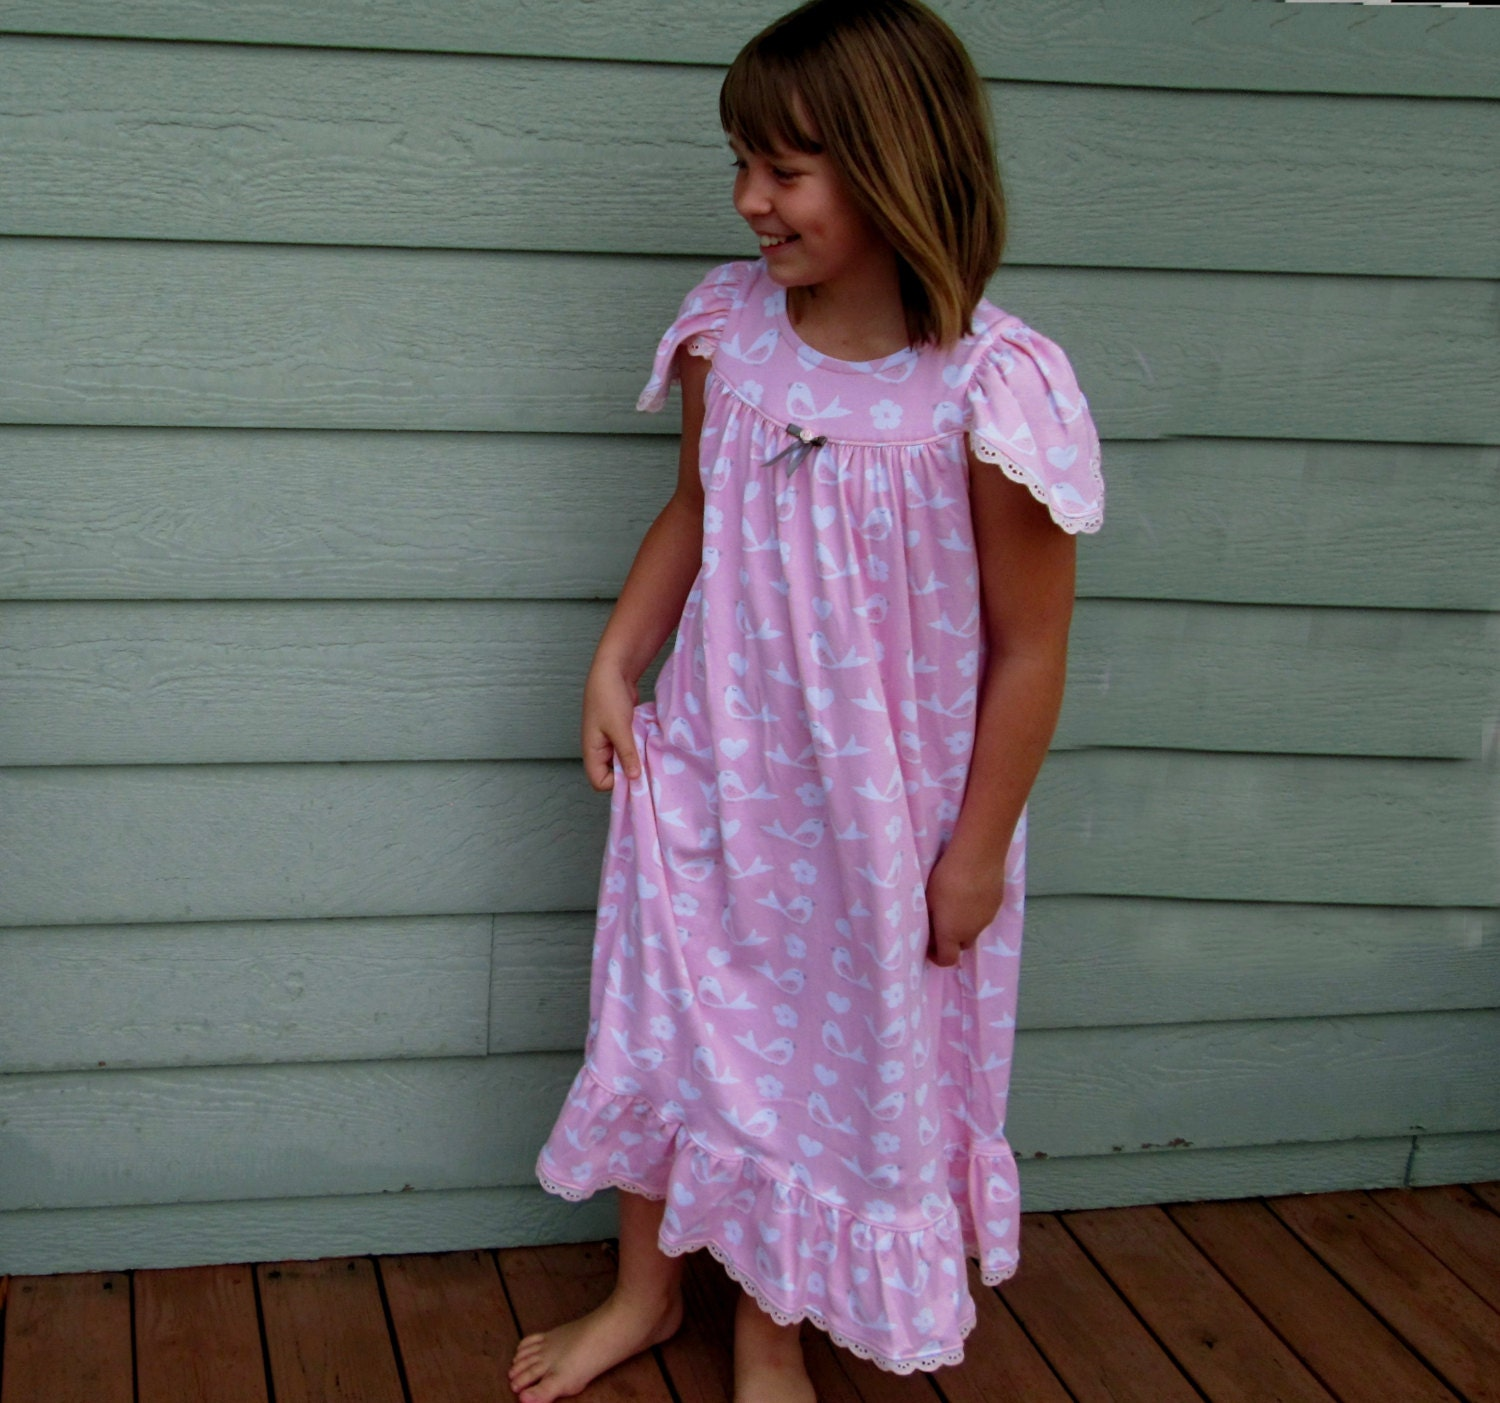 Matching girl and doll Size 3/4 CHUBBY nightgowns cotton blend with lots of flowers and a large ruffle hemline.